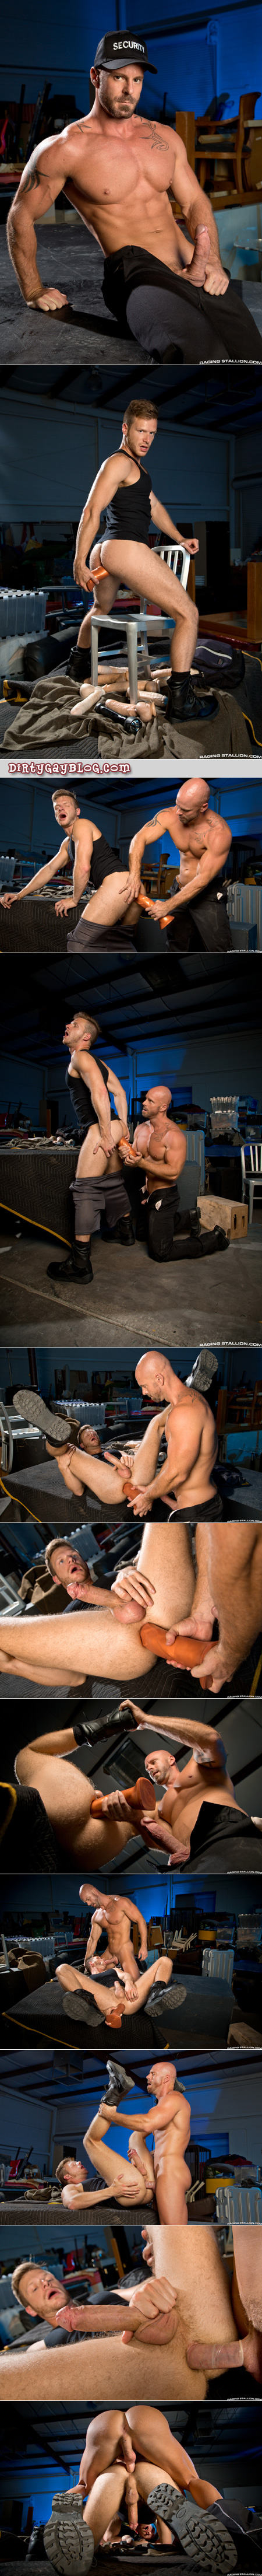 Hairy blonde thief caught stealing dildos is punished by a hung, muscular security guard with a beard.